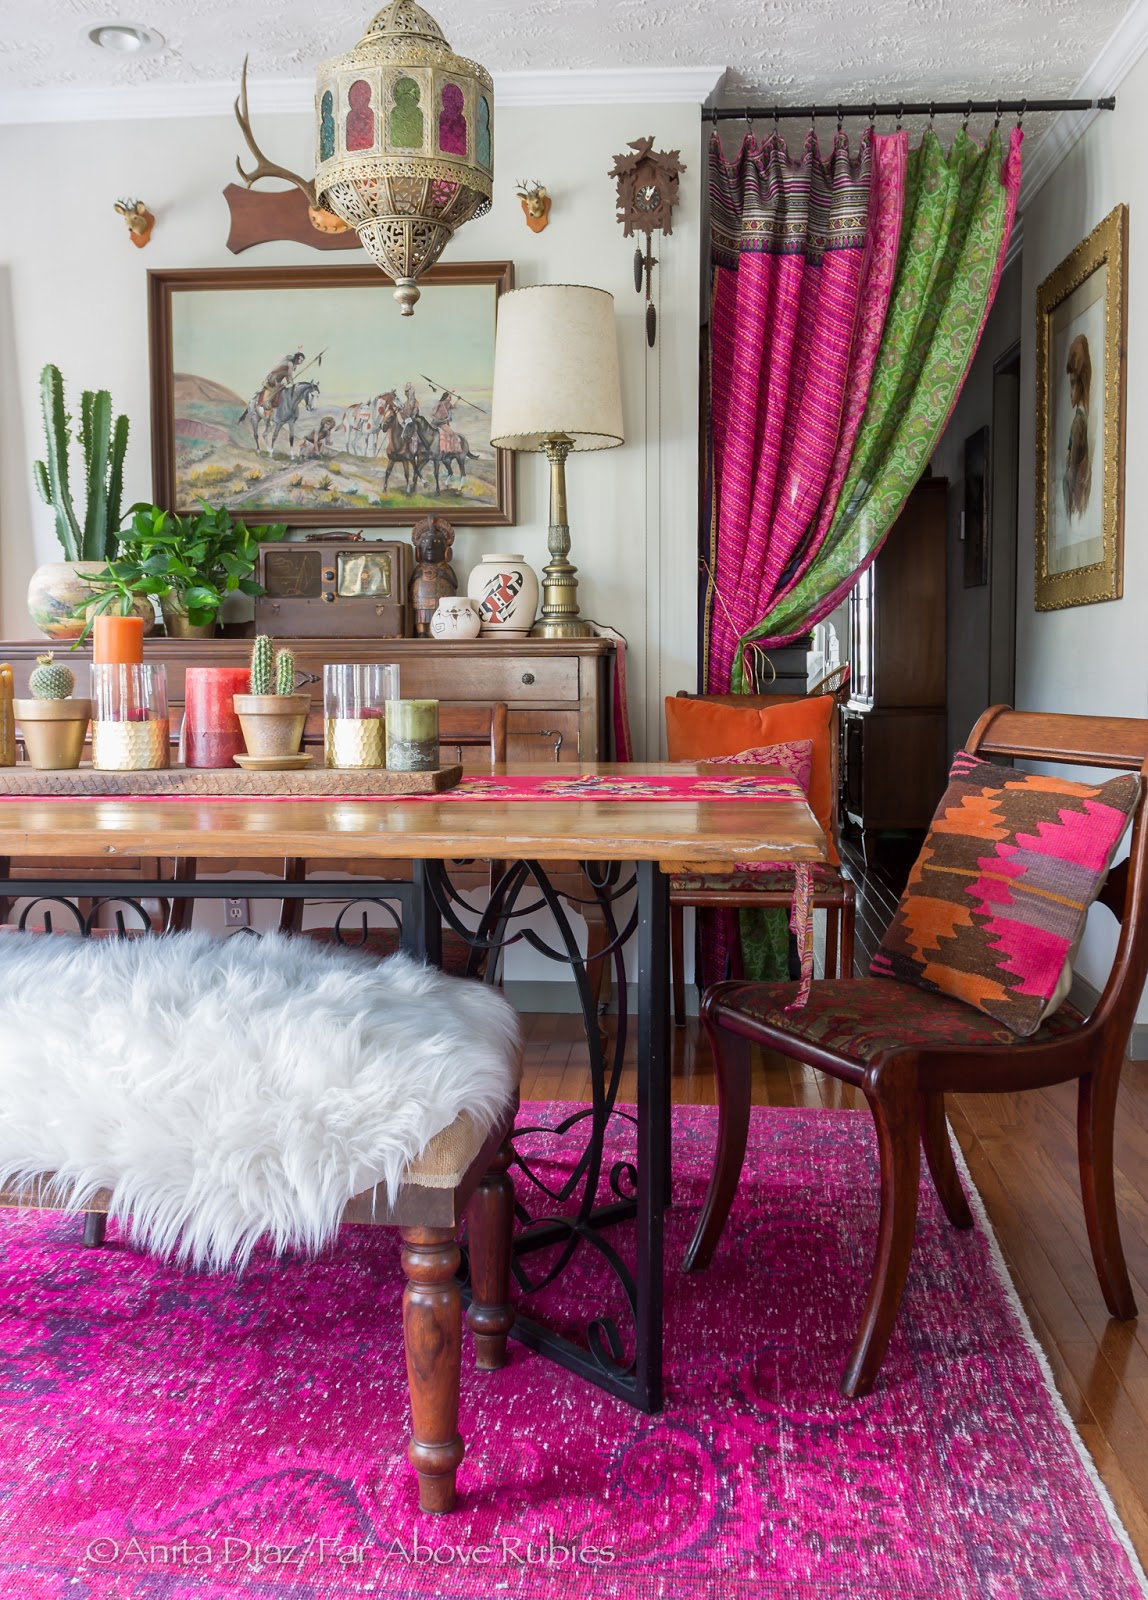 far above rubies: bohemian chic spring home tour